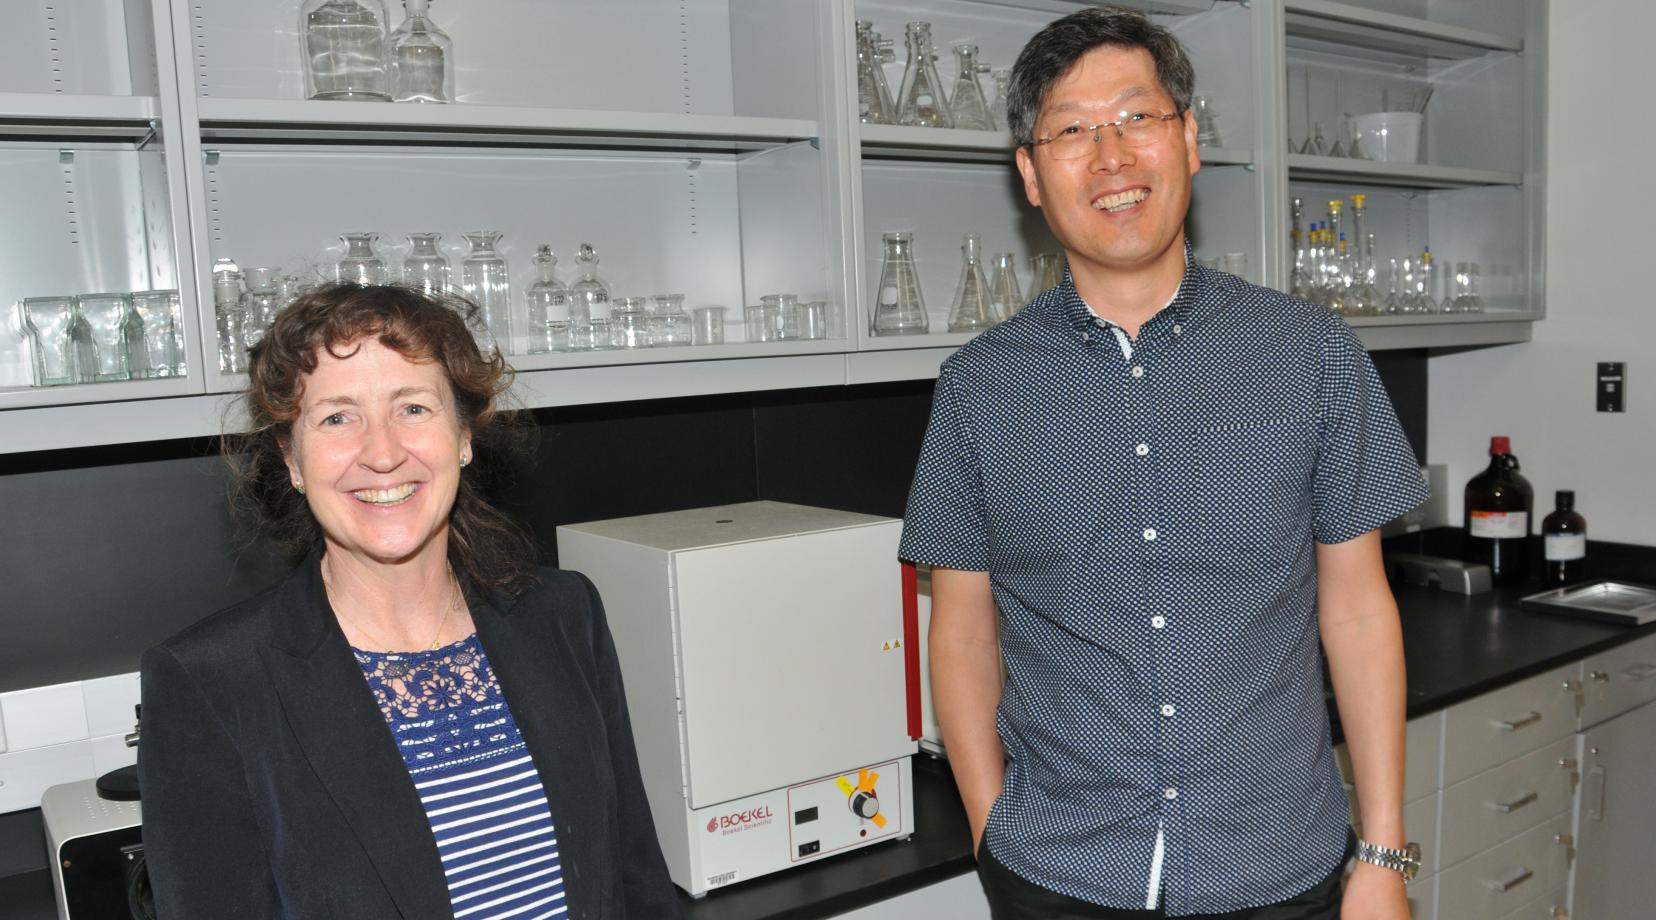 Dr. Melissa Harrington and Hwan Kim are the co-principal investigators who successfully obtained the five-year grant from the National Institute of General Medical Sciences.